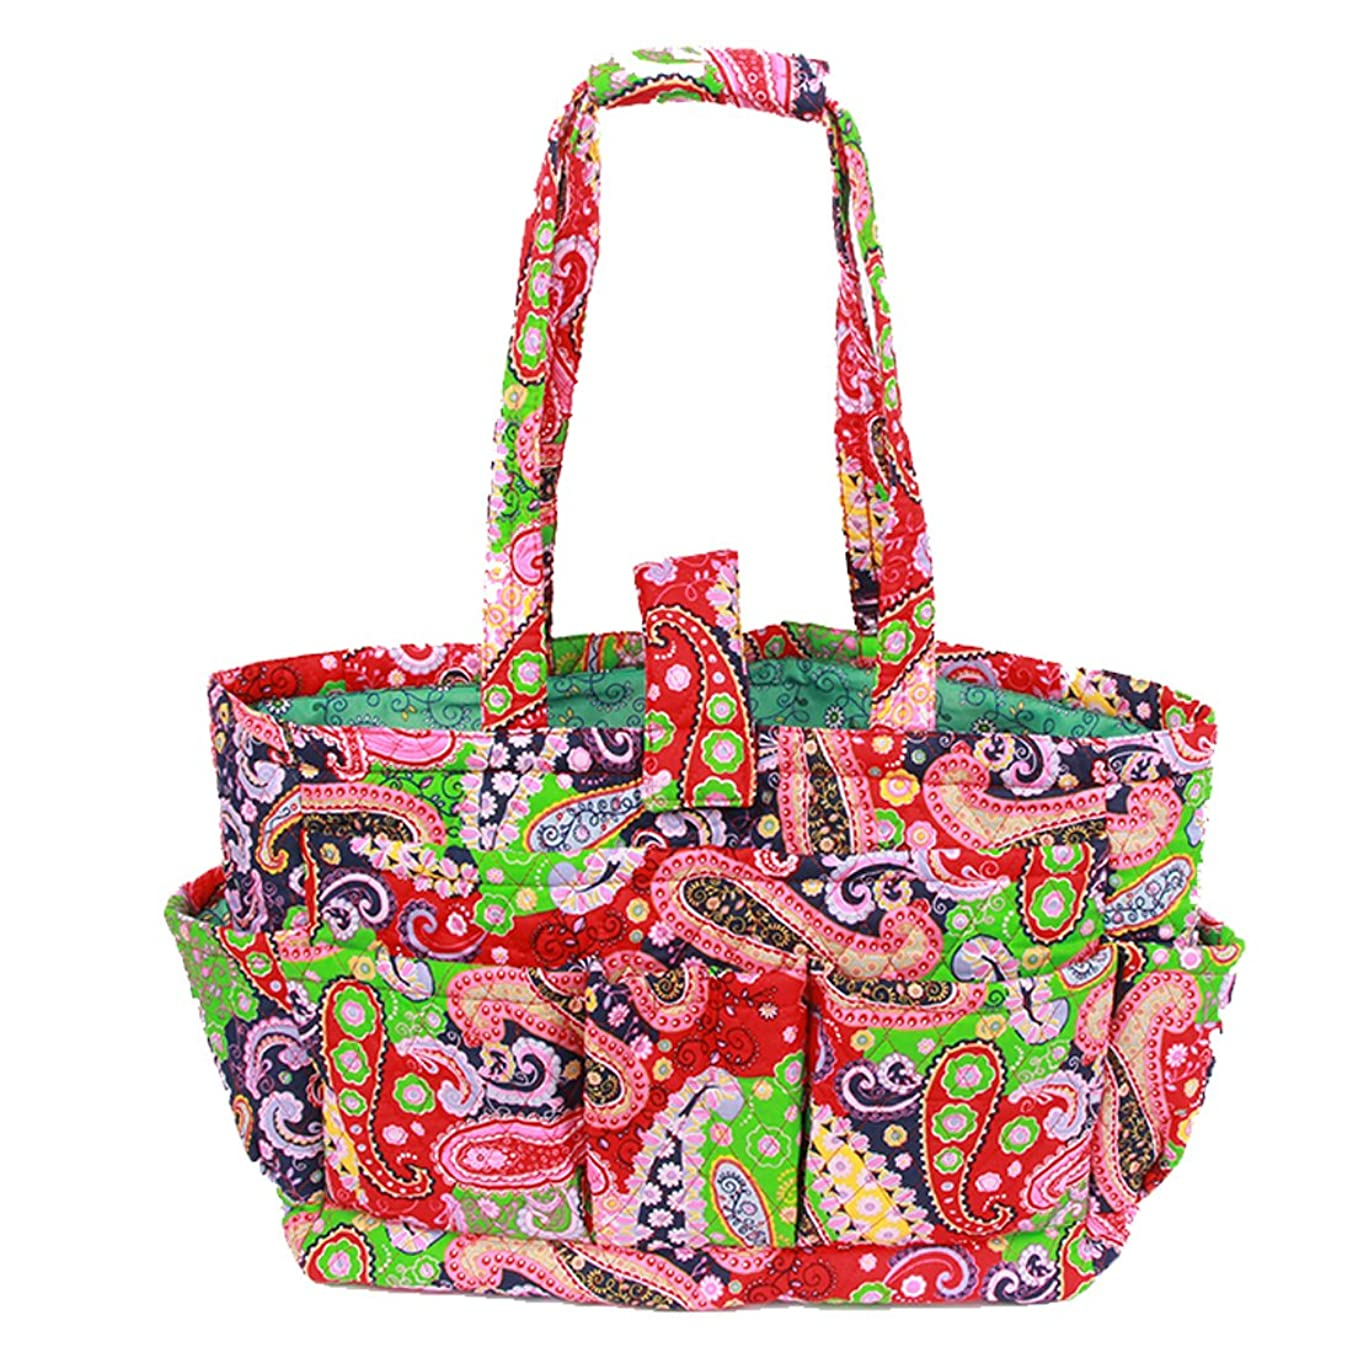 Floral Quilted Cotton Needle Bag Knitting Bag Yarn Storage Tote (Red)